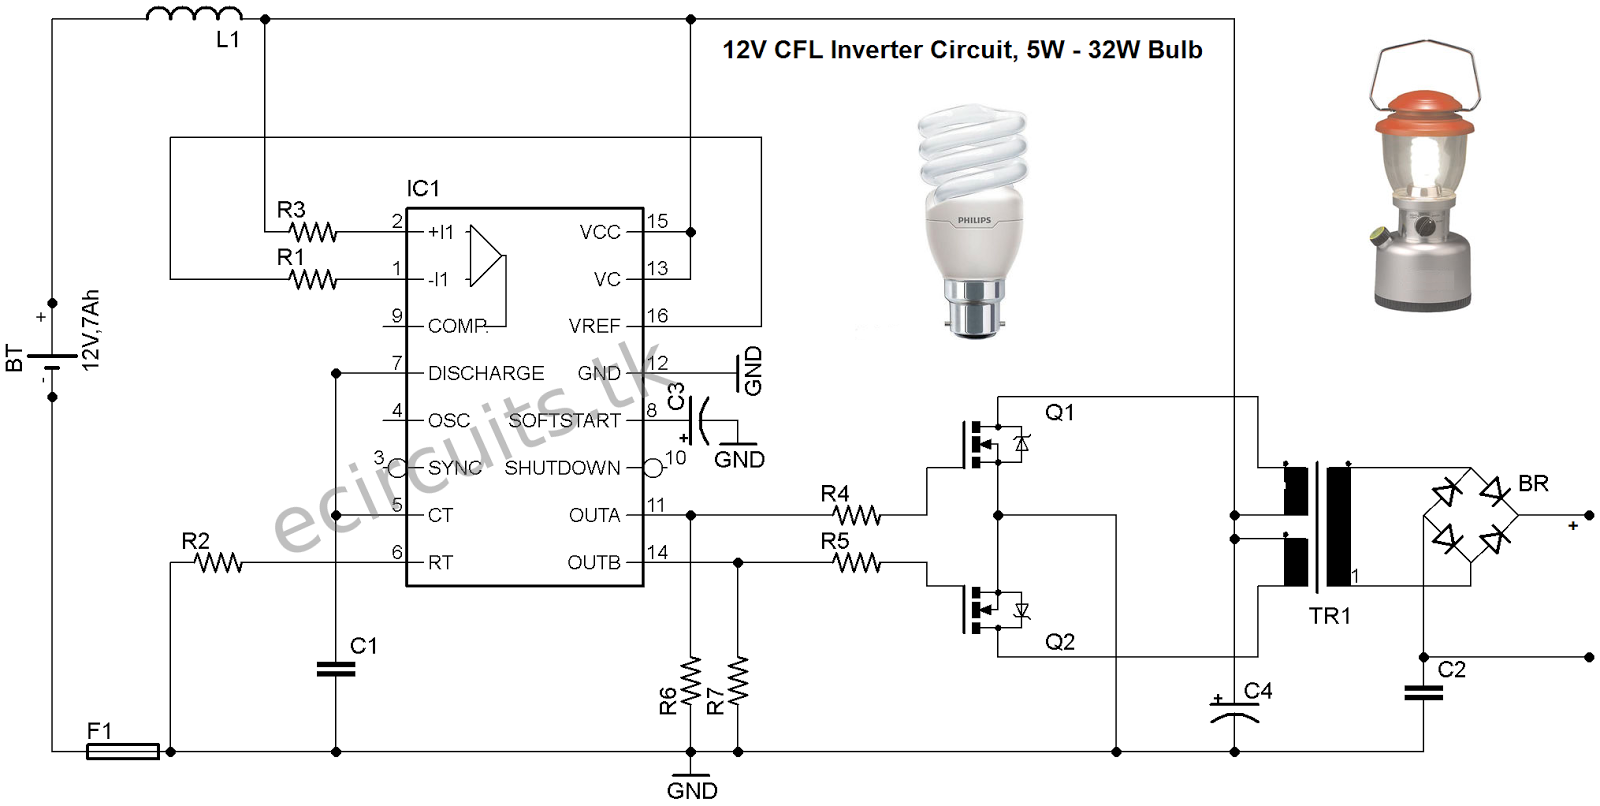 12v cfl emergency light circuit using 3525 ic mini inverter rh simplecircuitsprojects blogspot com cfl circuit diagram for lcd tvs cfl circuit diagram for lcd tvs